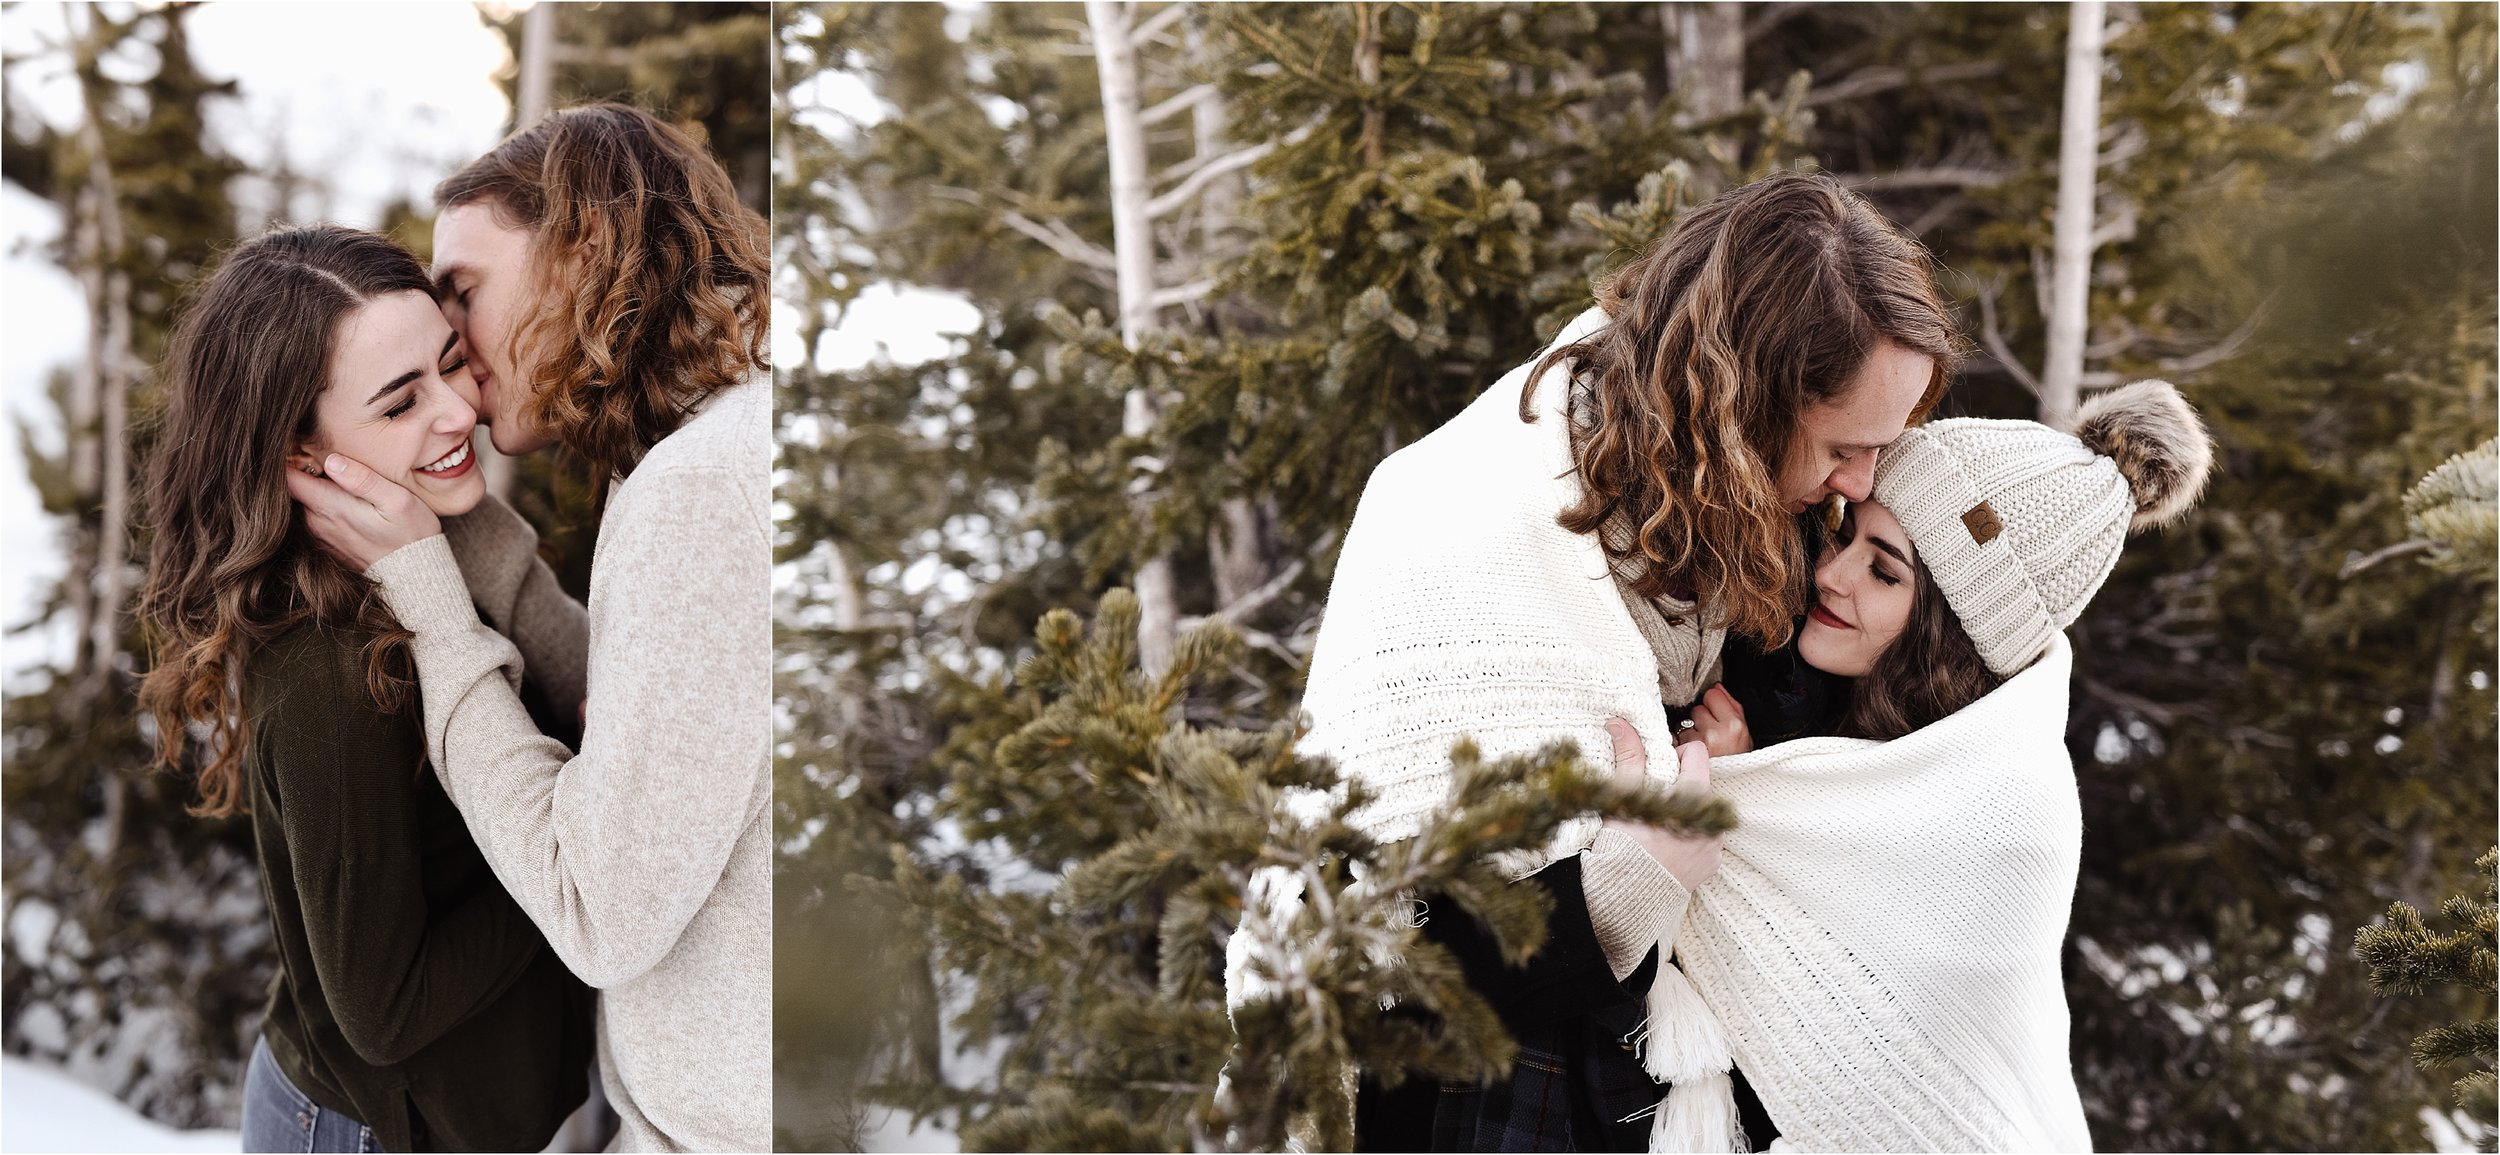 Loveland Pass, Colorado, Engagement Session Photos-3.jpg